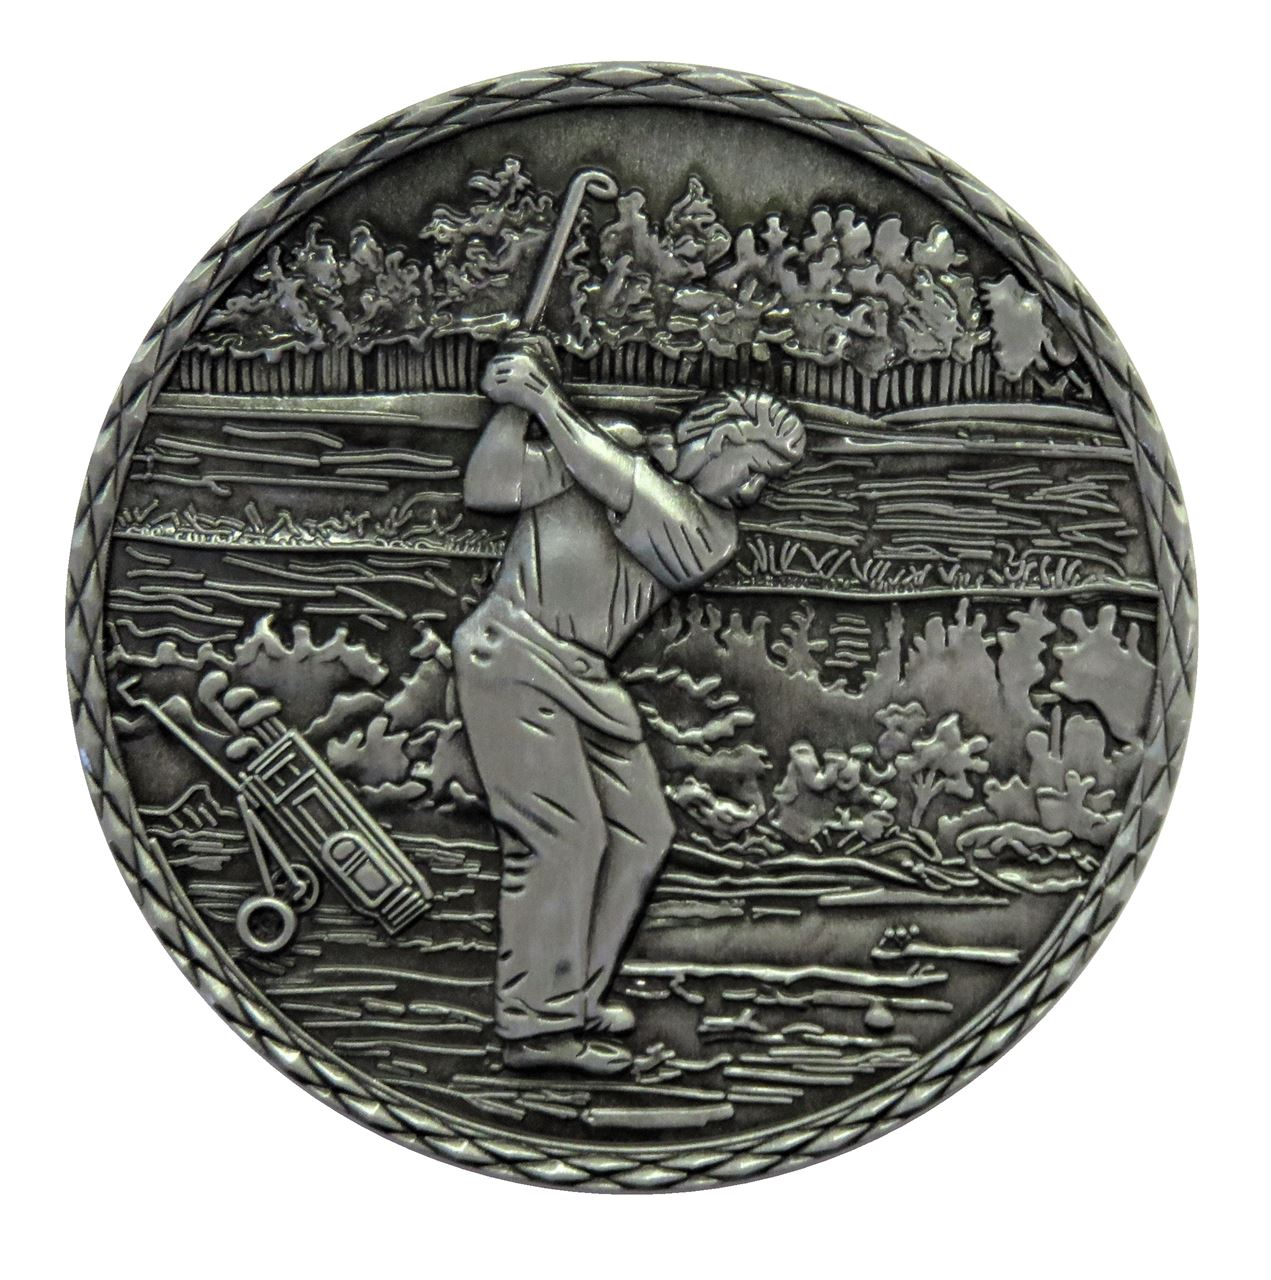 Silver Quality Golf 2 Medal (size: 60mm) - Golf2 Alloy